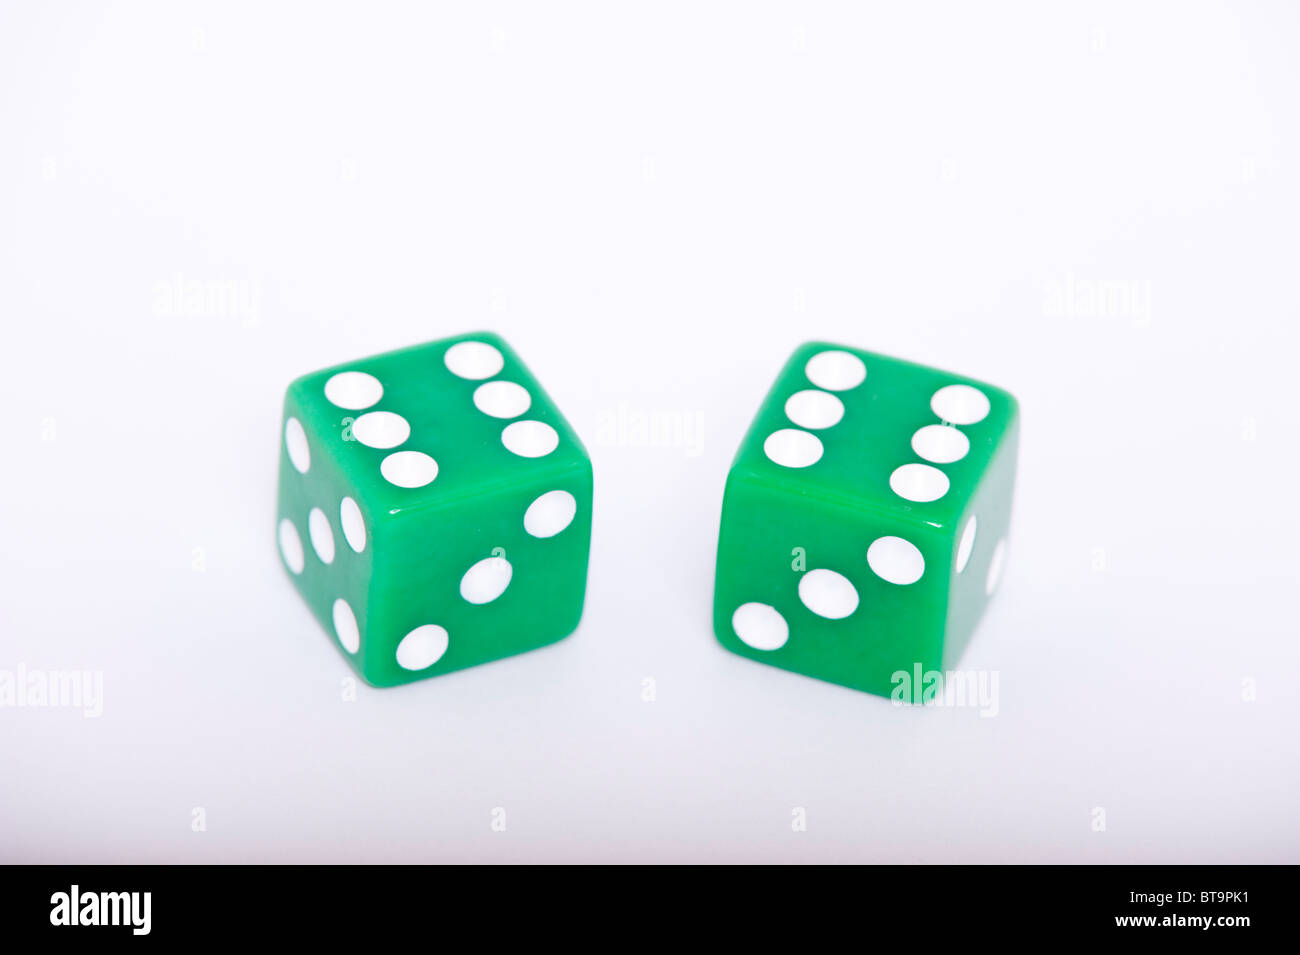 A pair of green dice both showing a six on a white background - Stock Image